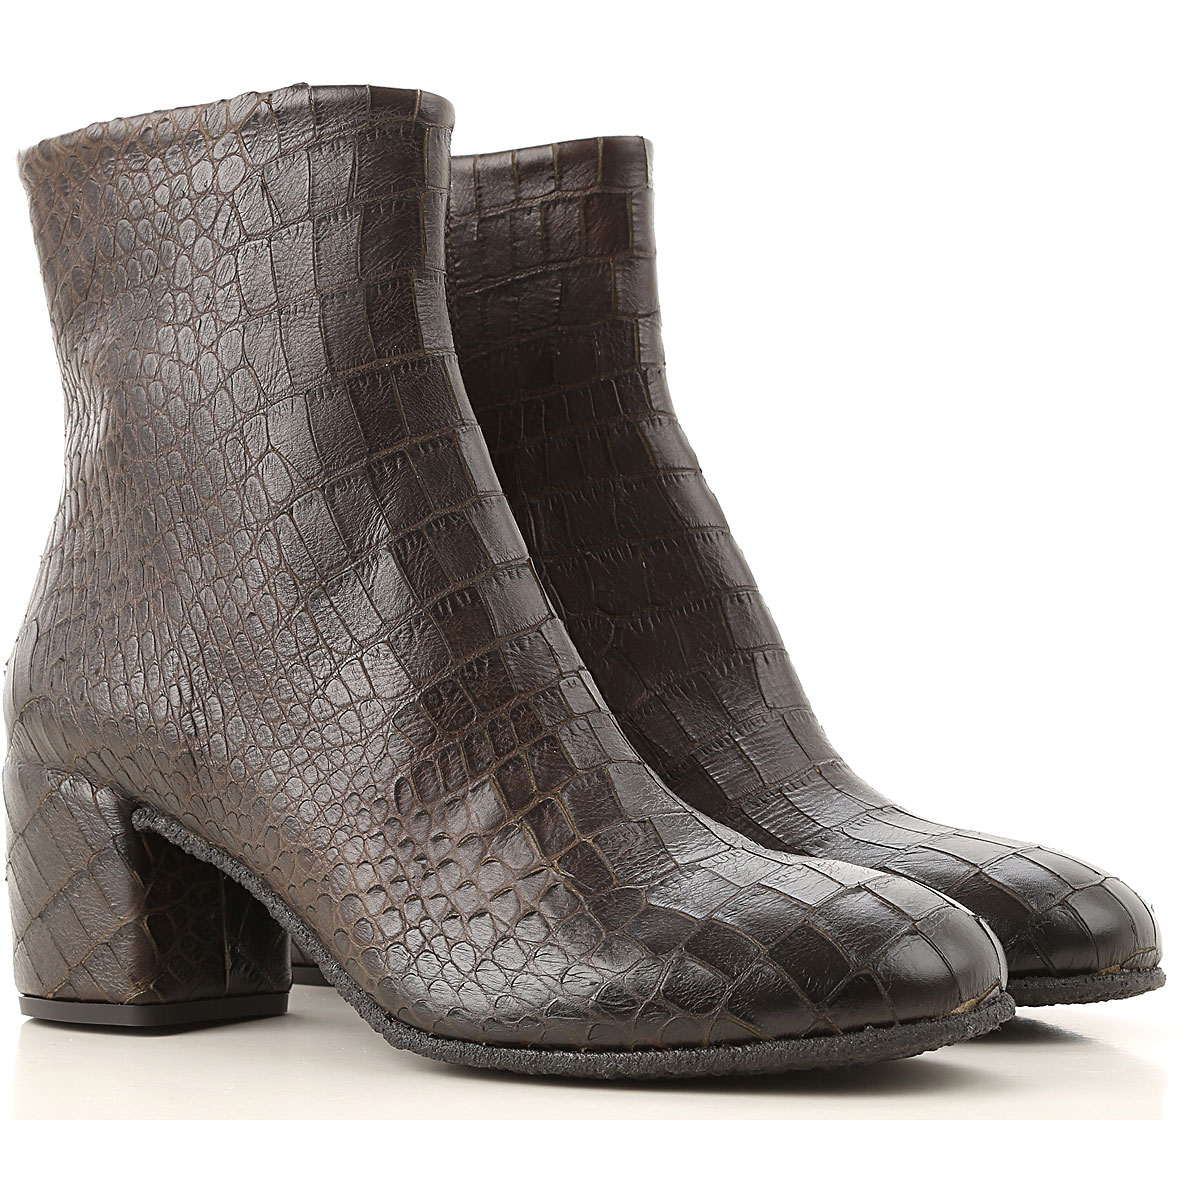 Roberto Del Carlo Boots for Women, Booties On Sale, Mud, Leather, 2019, 10 11 7 8 8.5 9